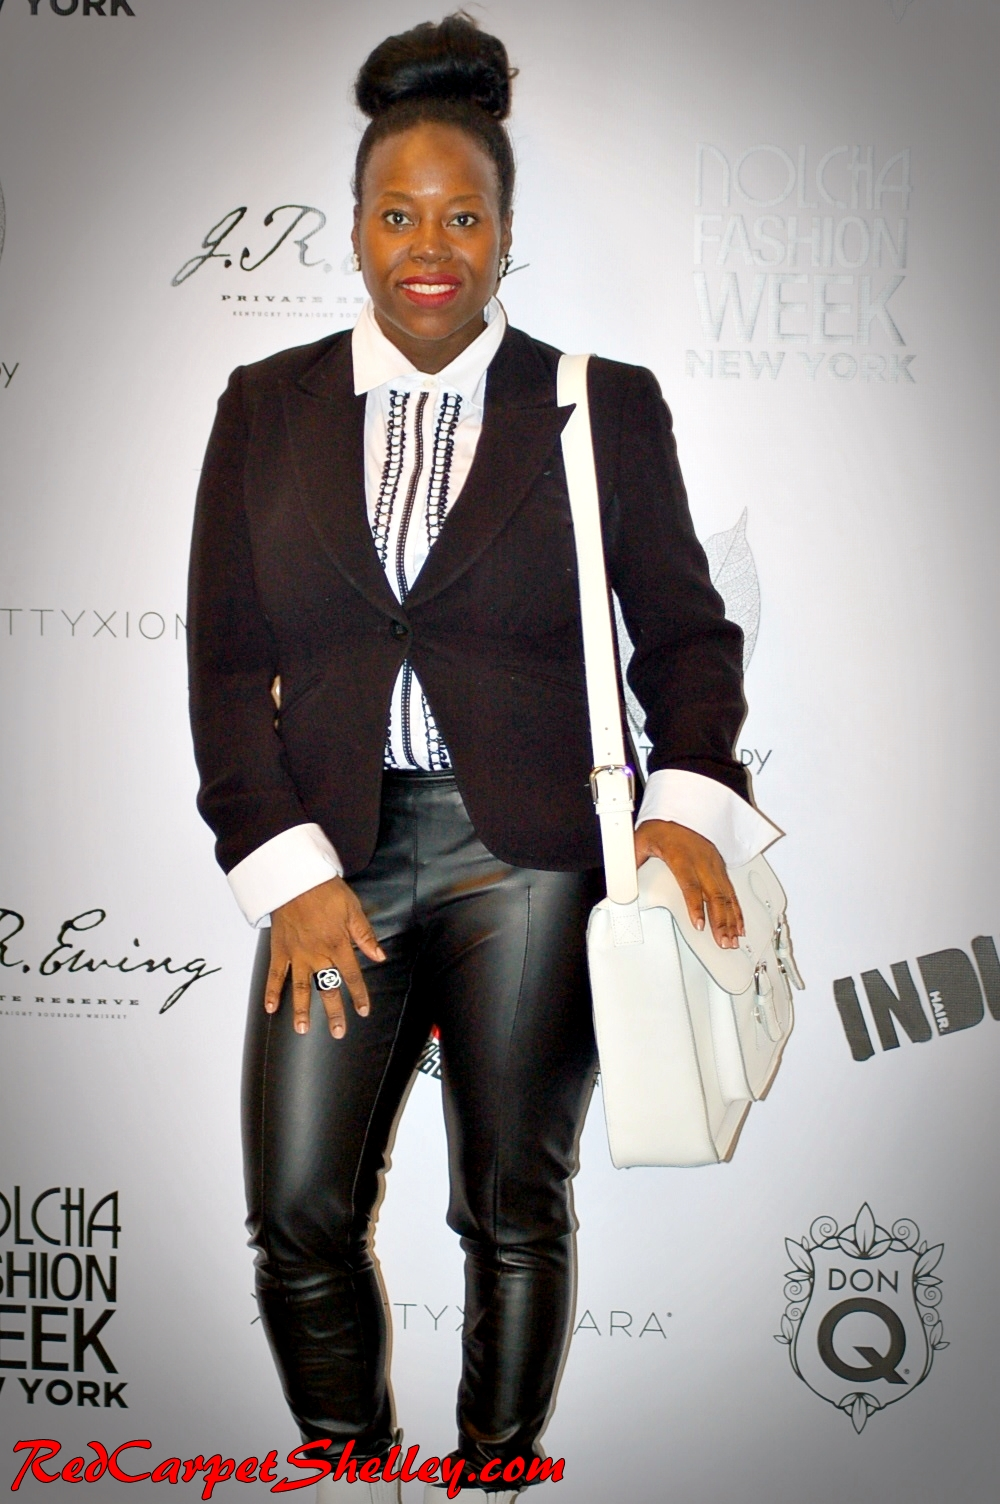 Fashion Editor/Stylist, Dawn Holloway of DH Style